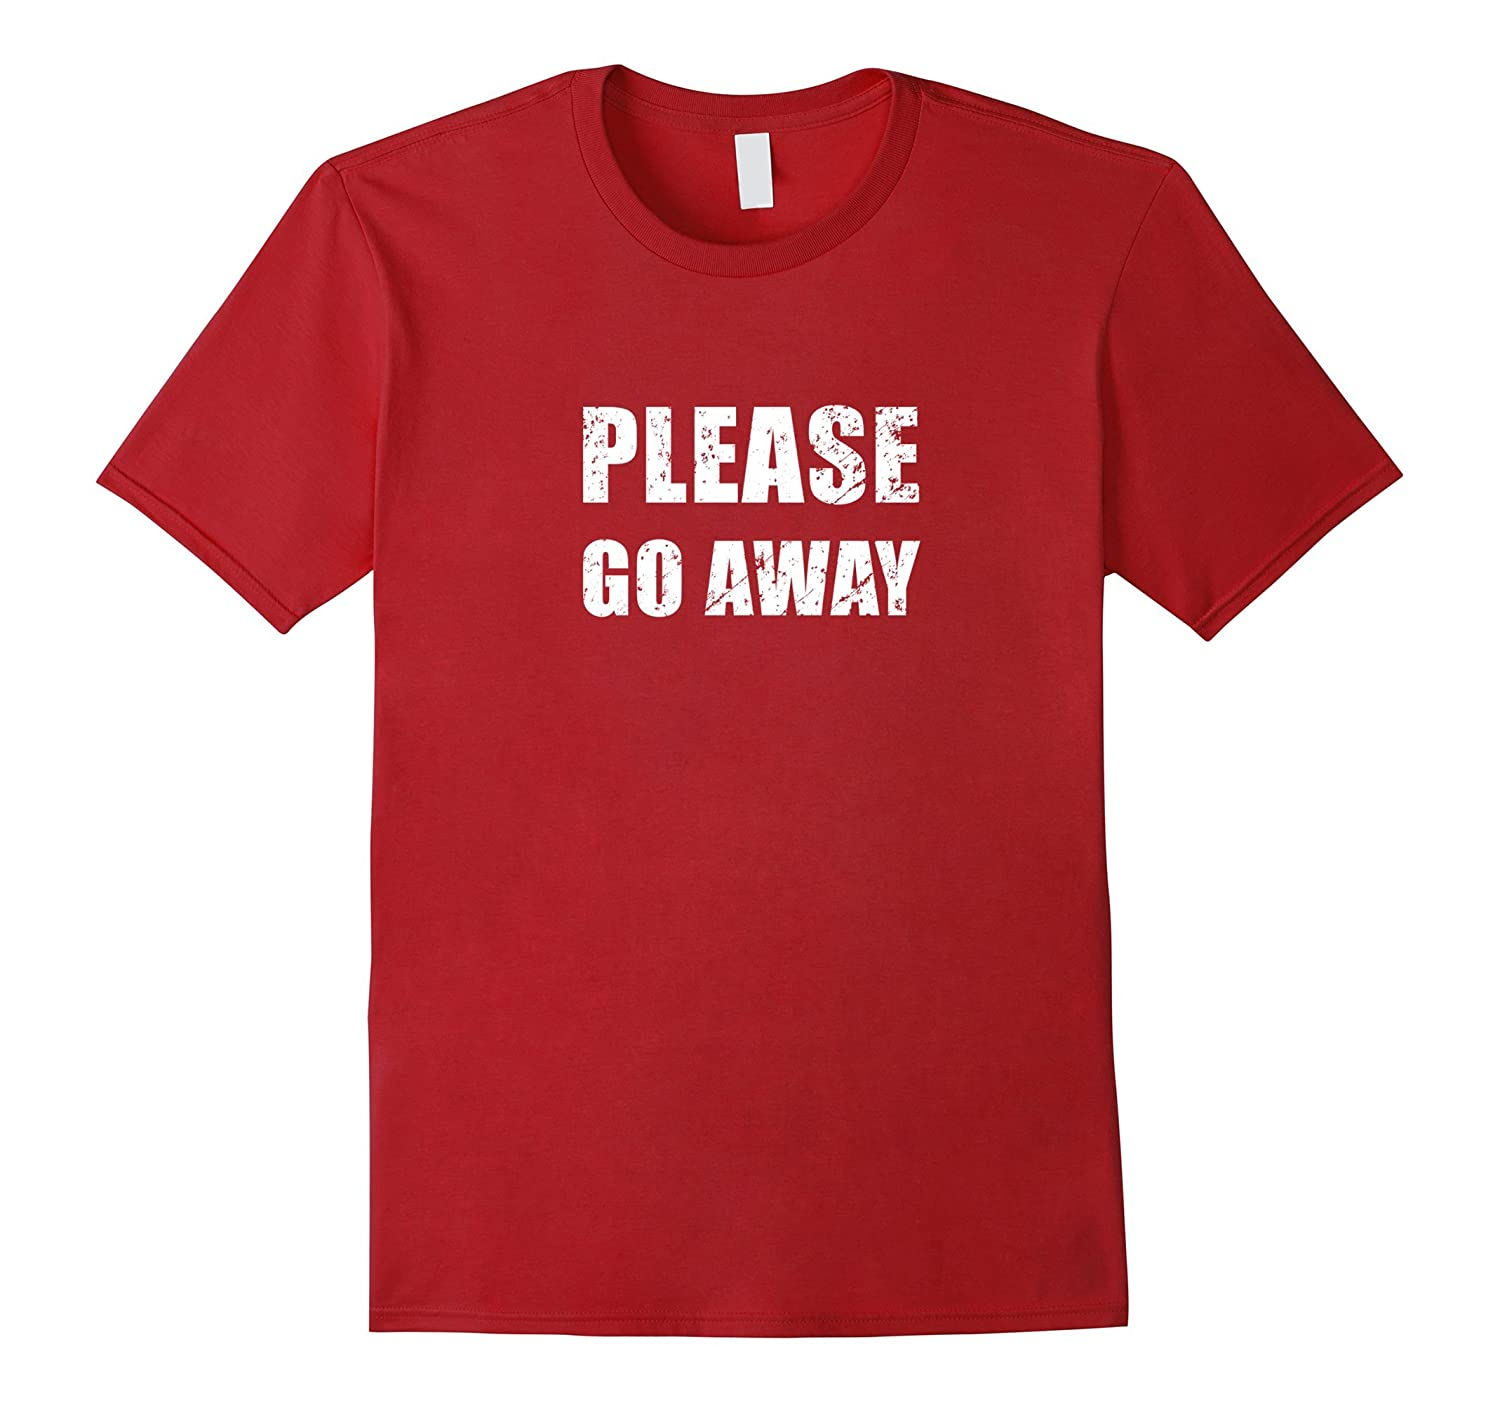 Please Go Away Antisocial T-Shirt Distressed Grunge Style-FL